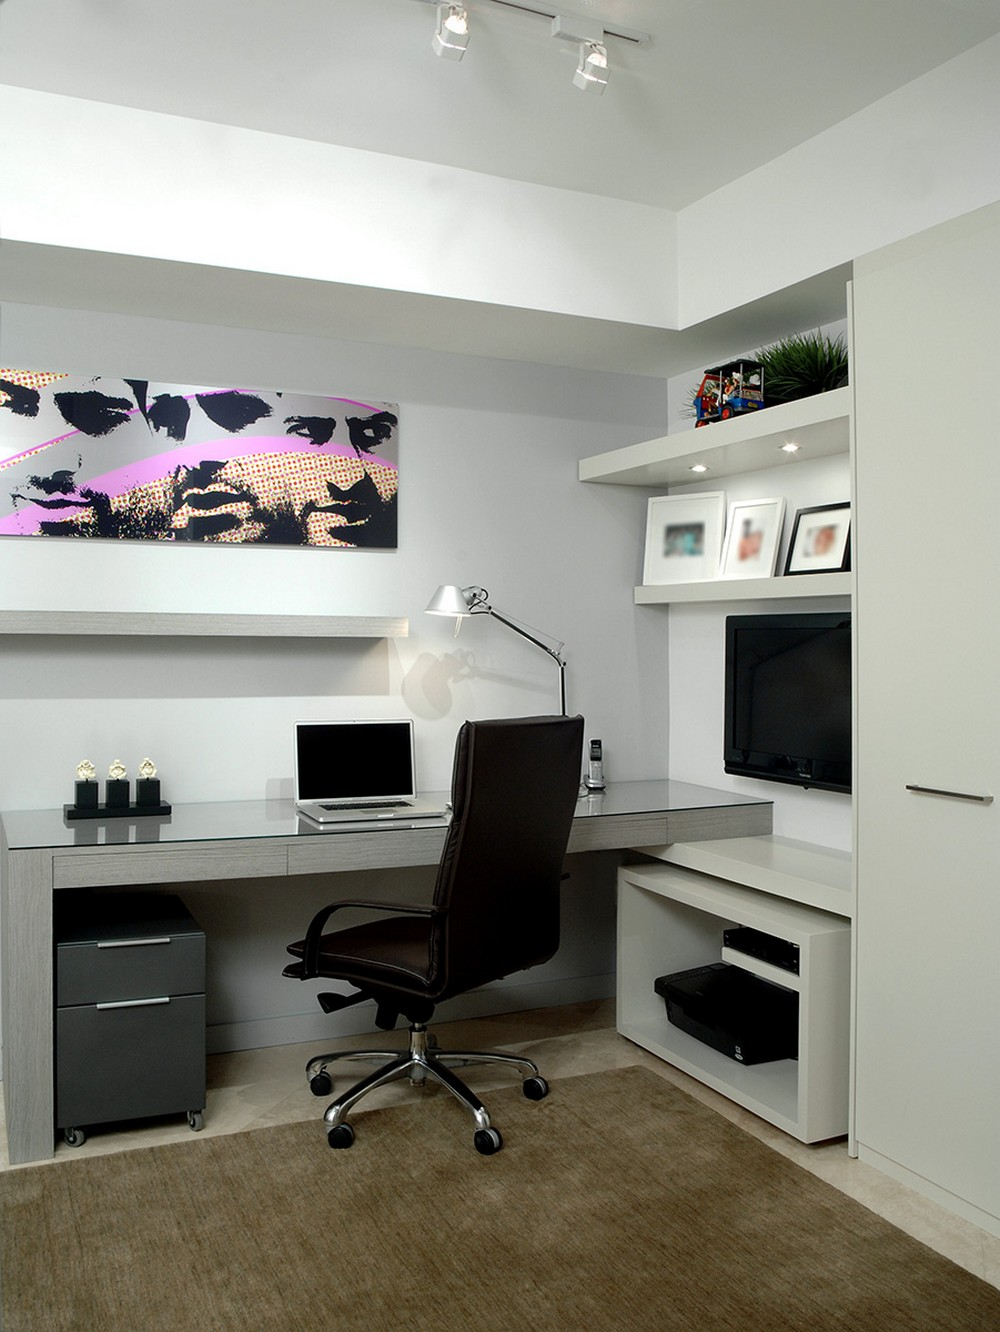 18 Awe-Inspiring Home Office Designs full of Colors and Textures 8 home office designs 17 Awe-Inspiring Home Office Designs full of Colors and Textures 18 Awe Inspiring Home Office Designs full of Colors and Textures 8